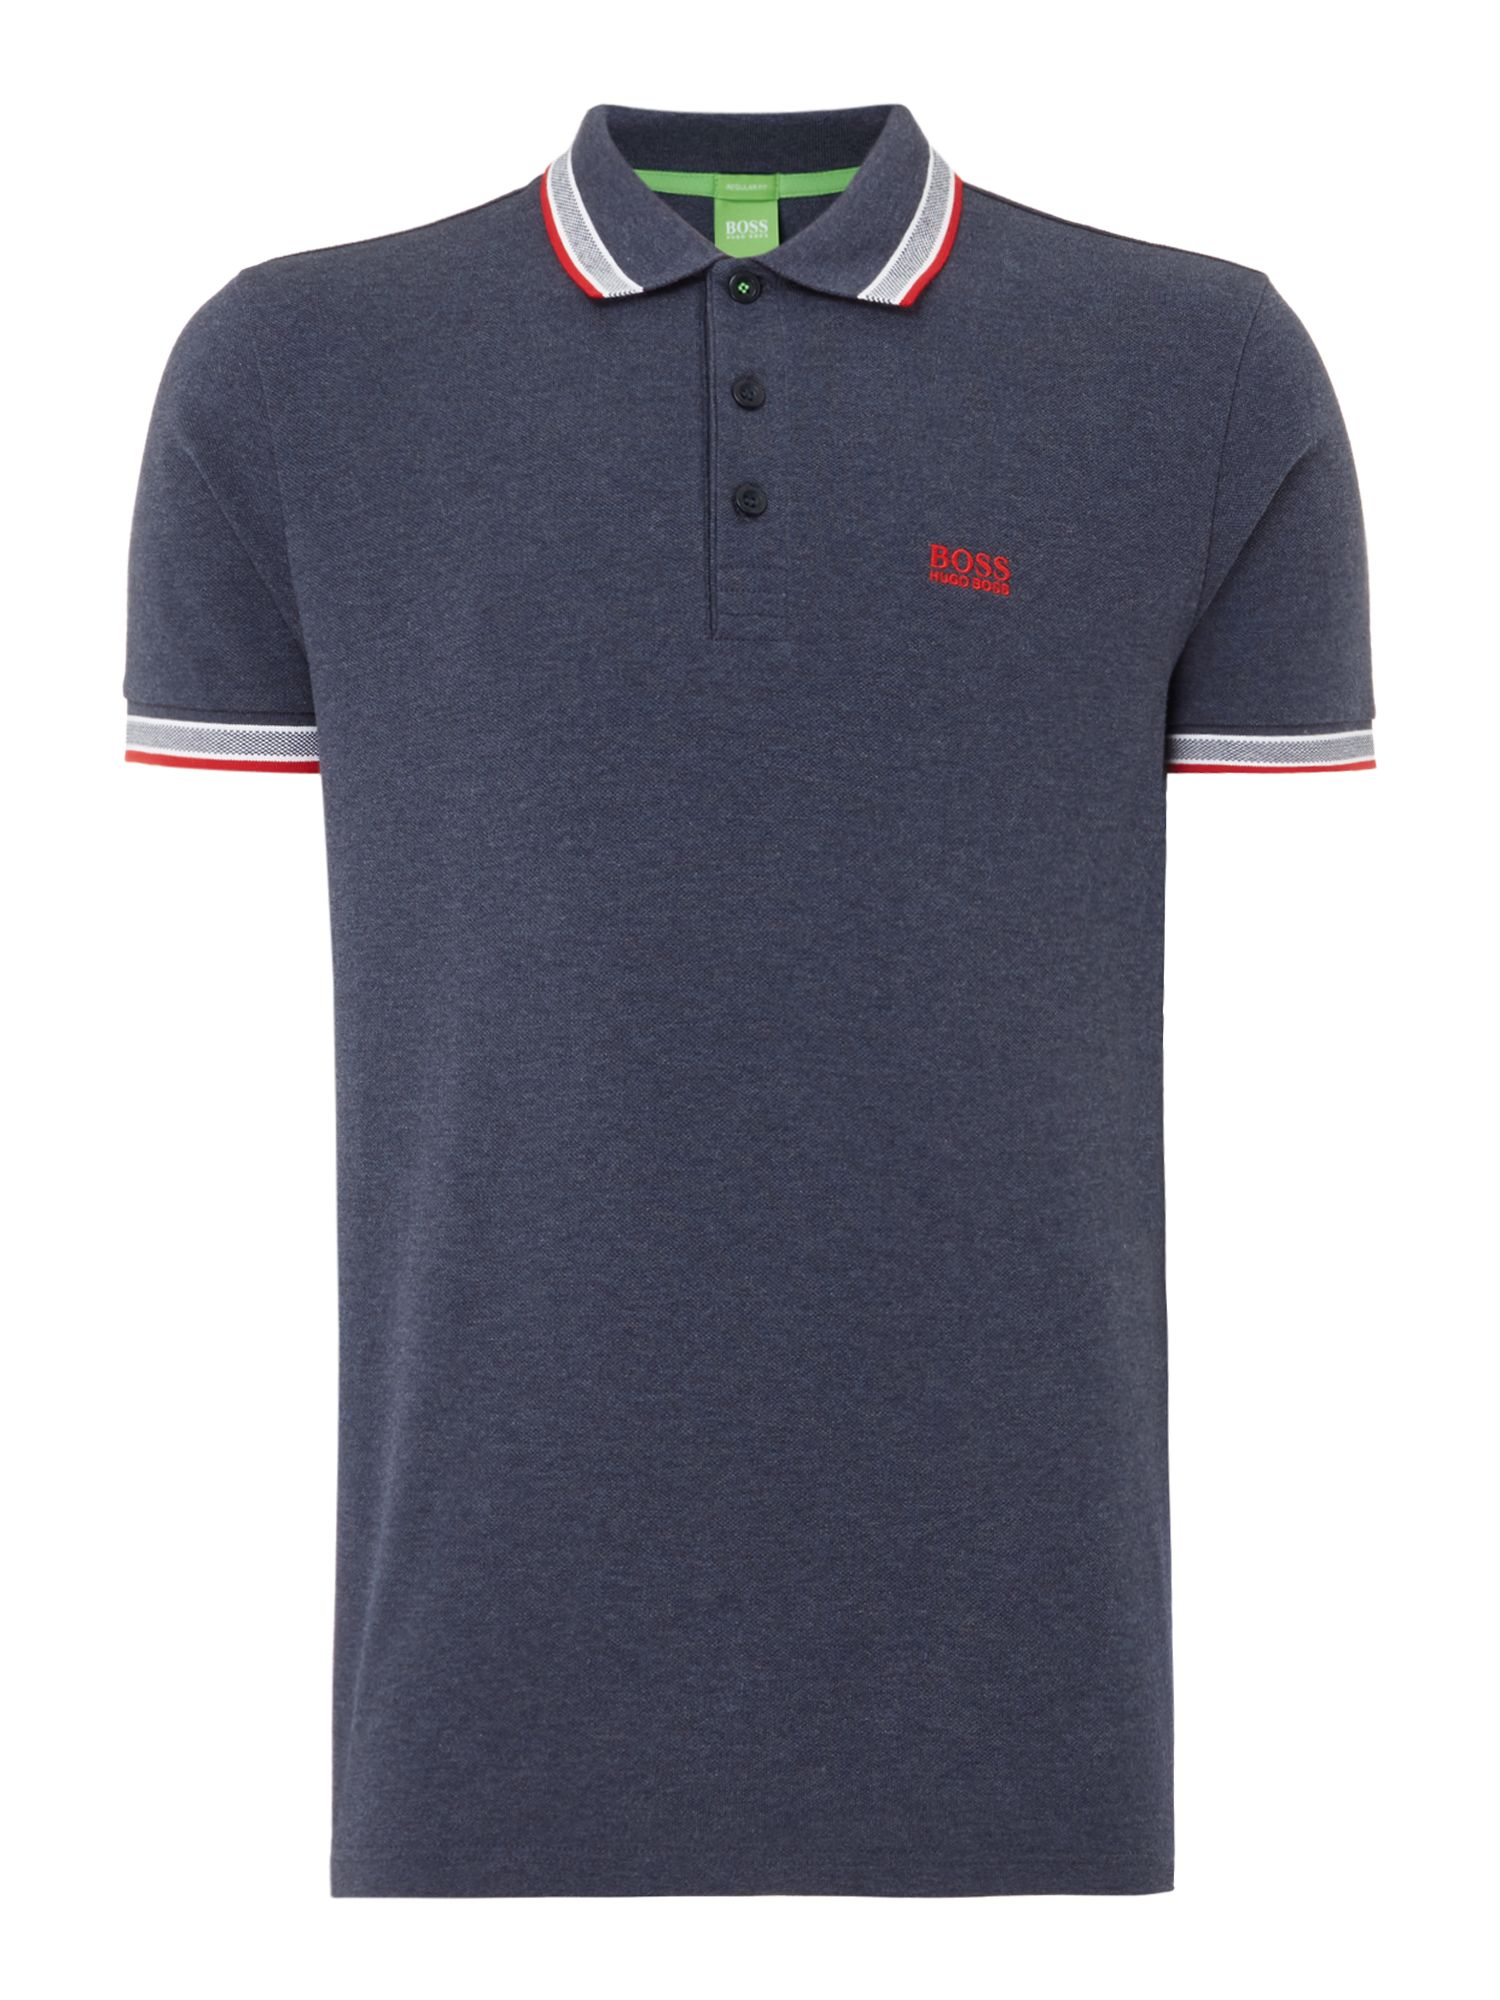 Men's Hugo Boss Paddy Short Sleeve Polo Shirt, Blue